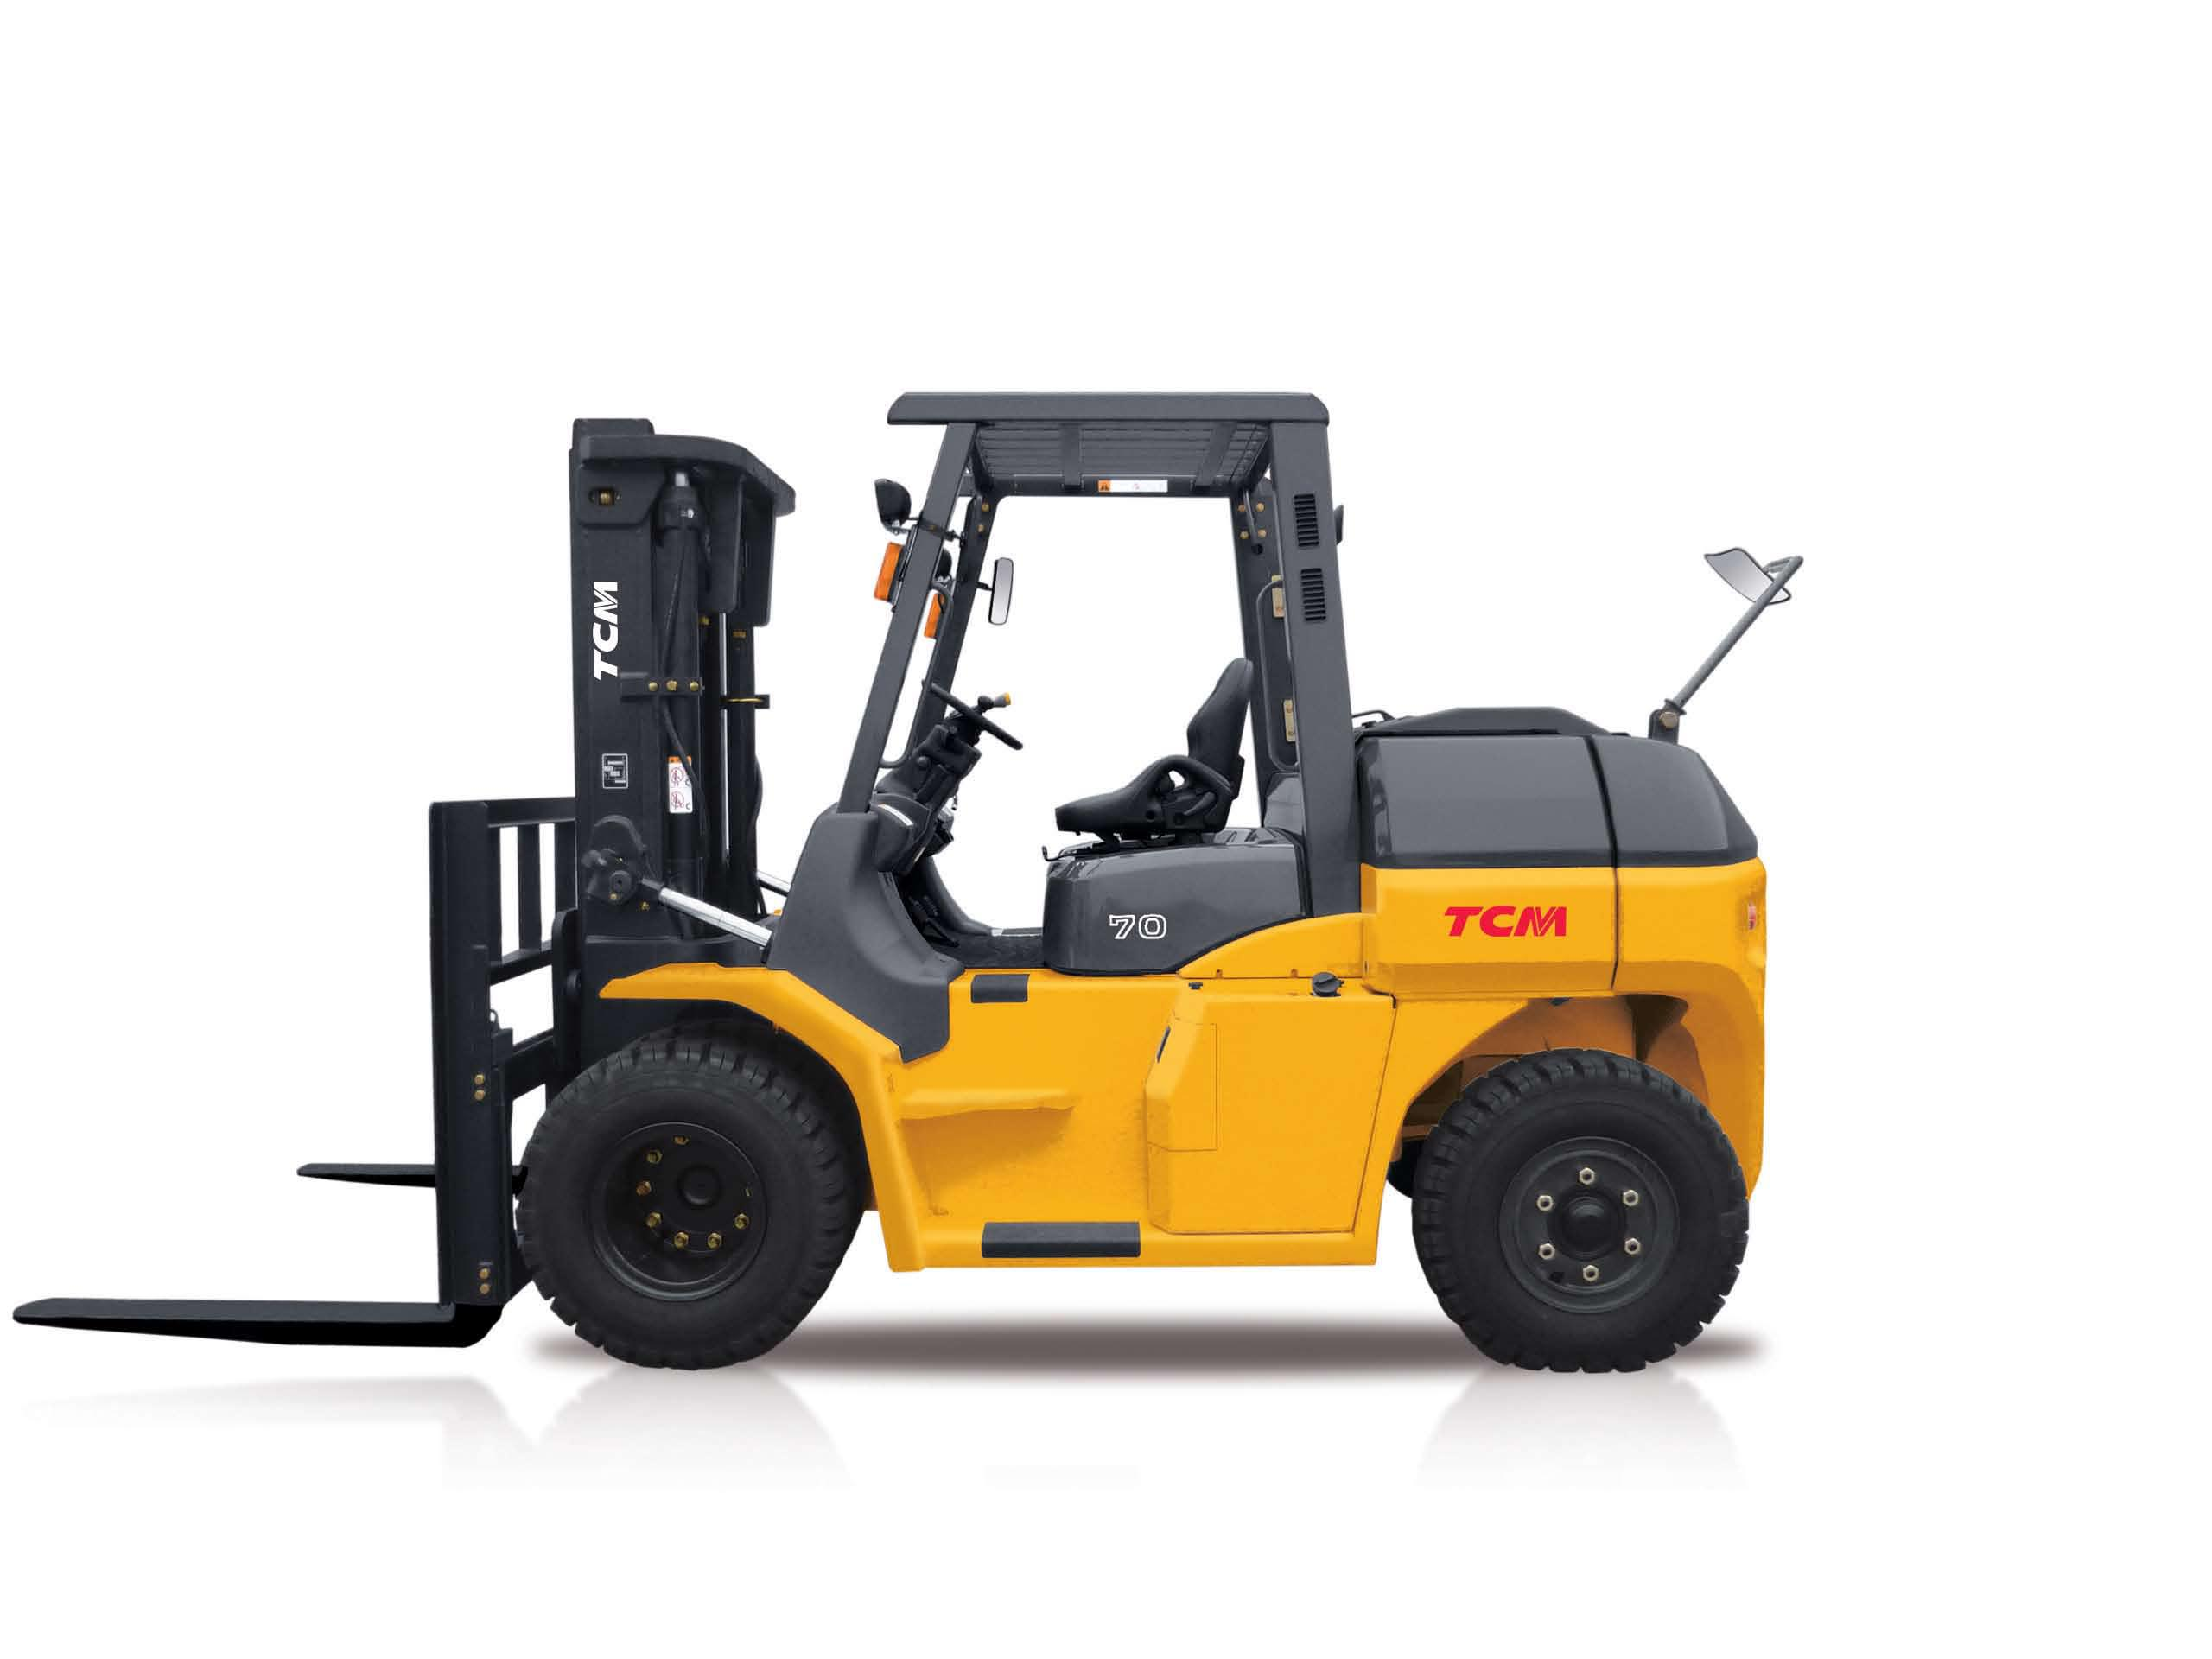 First Look: FD 60-100 Diesel Counterbalance Truck Relaunch